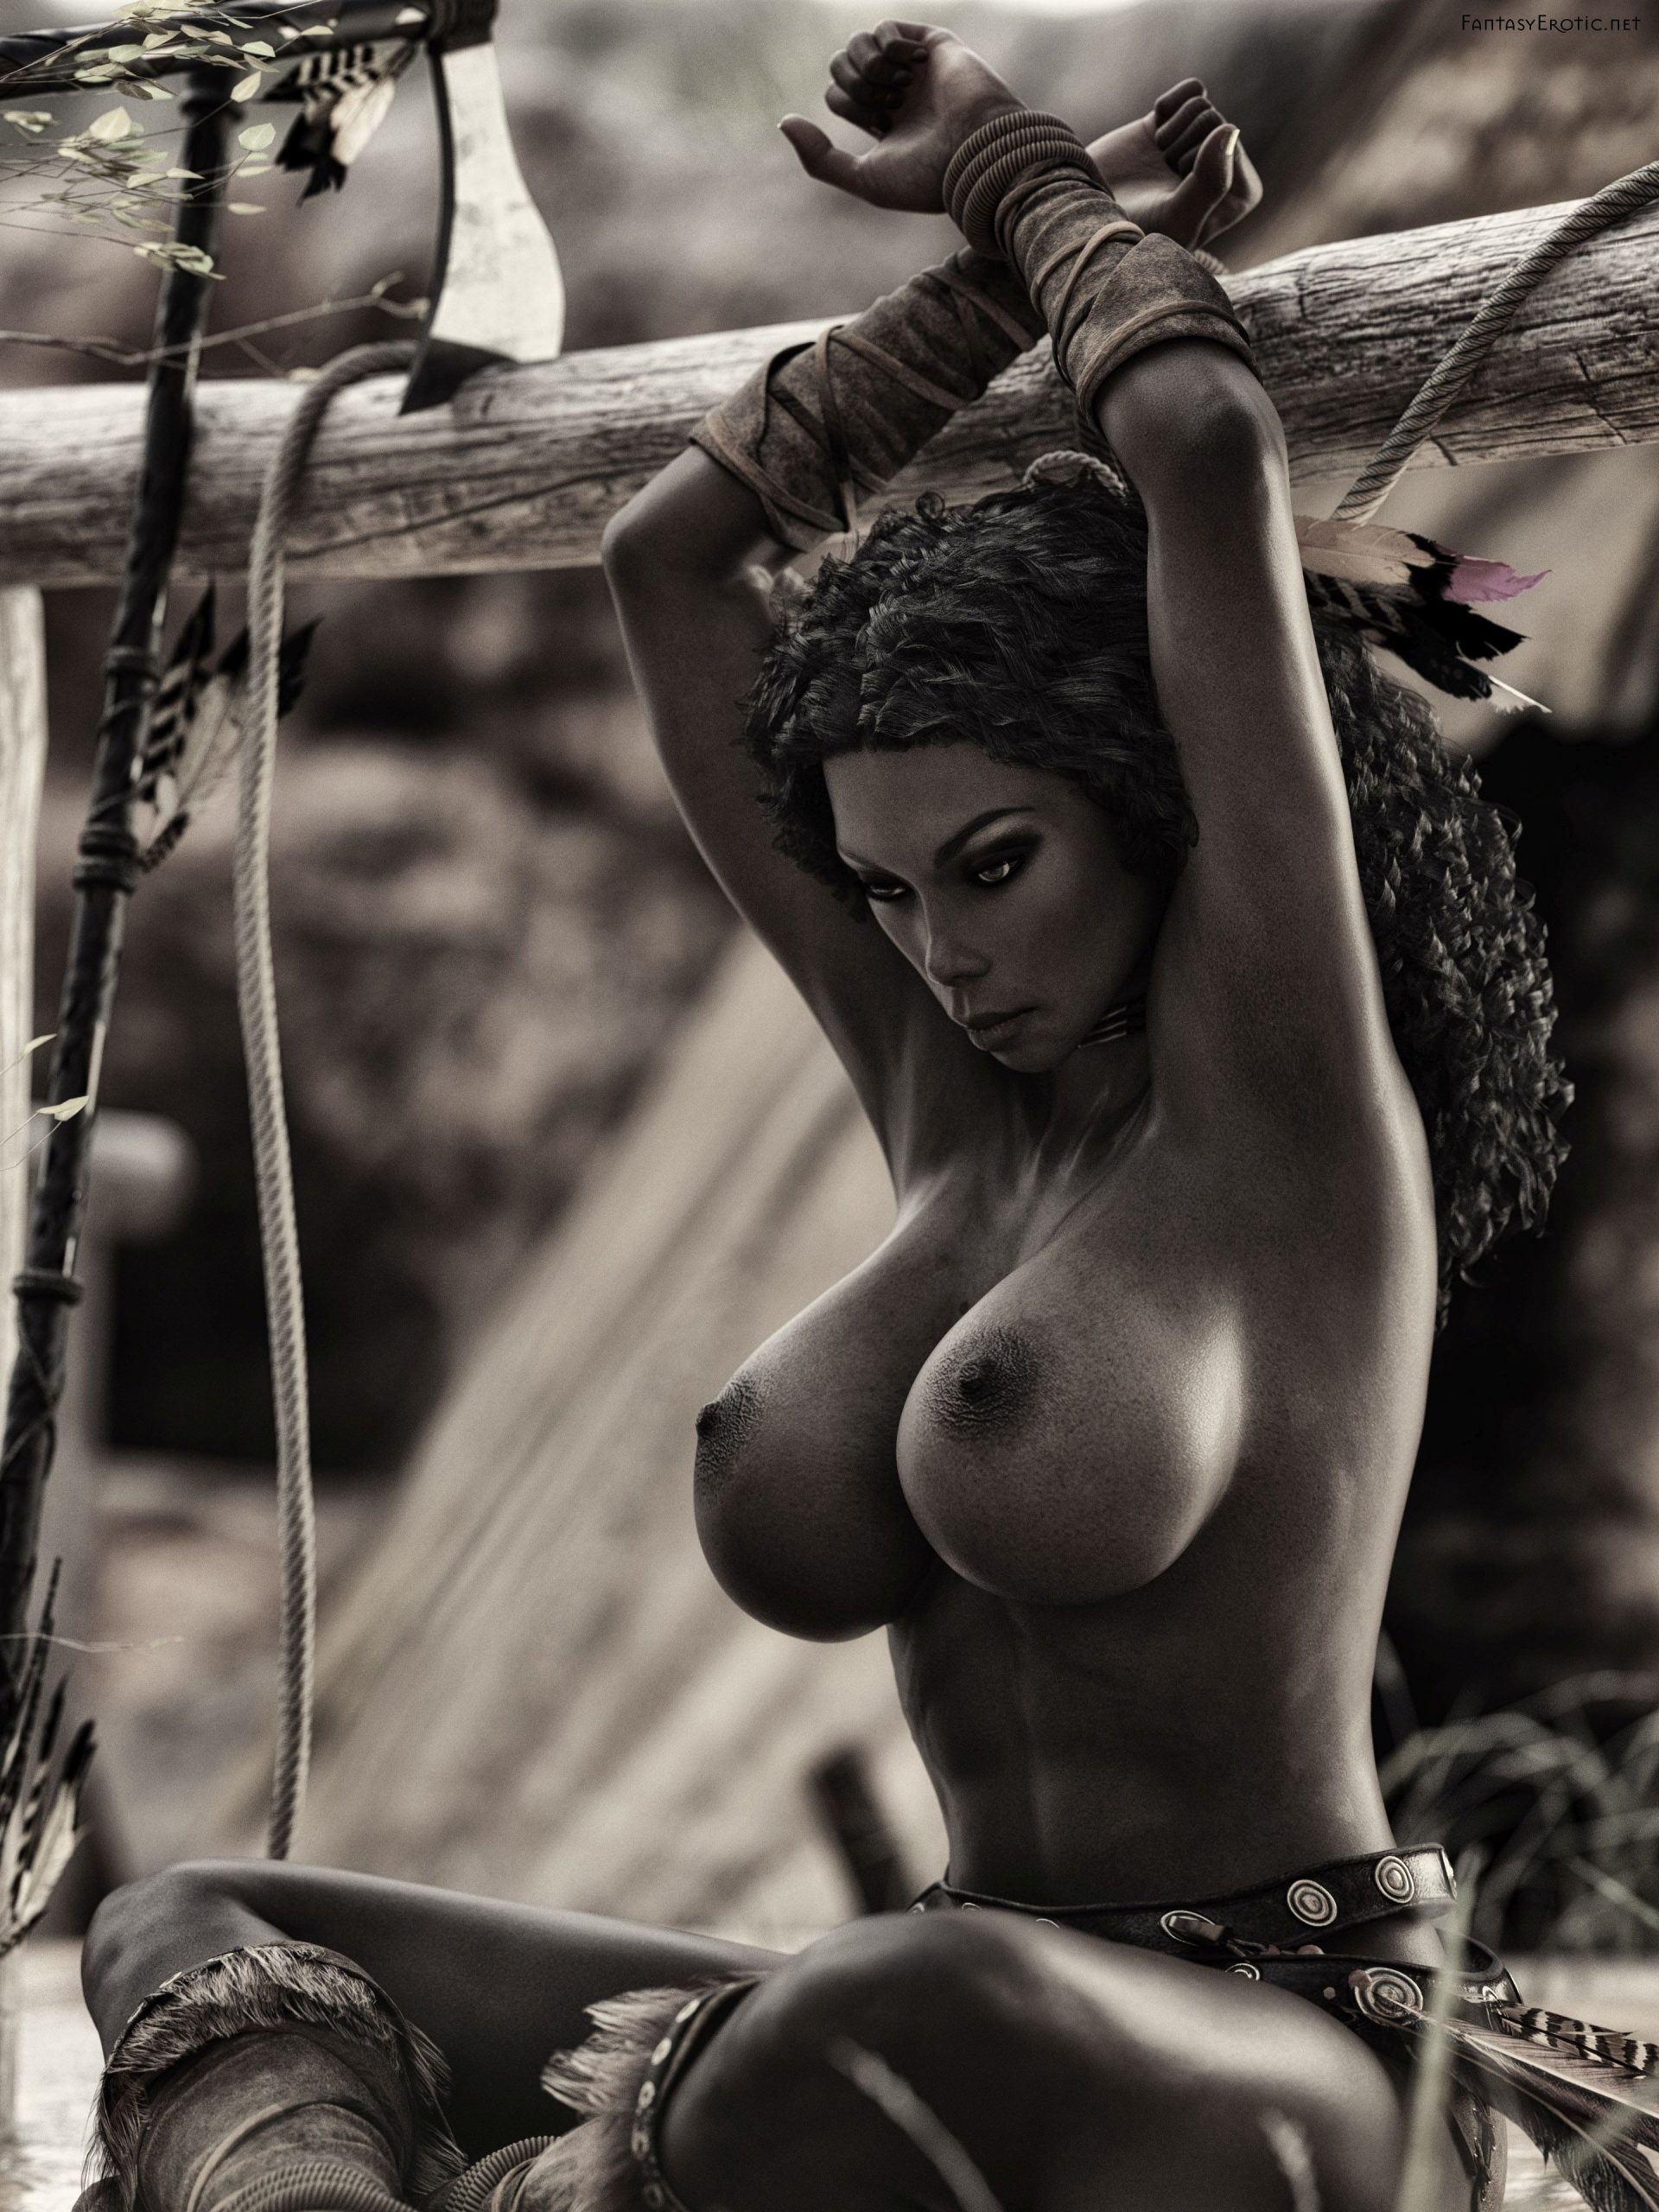 Native American Nude Bondage FineArt